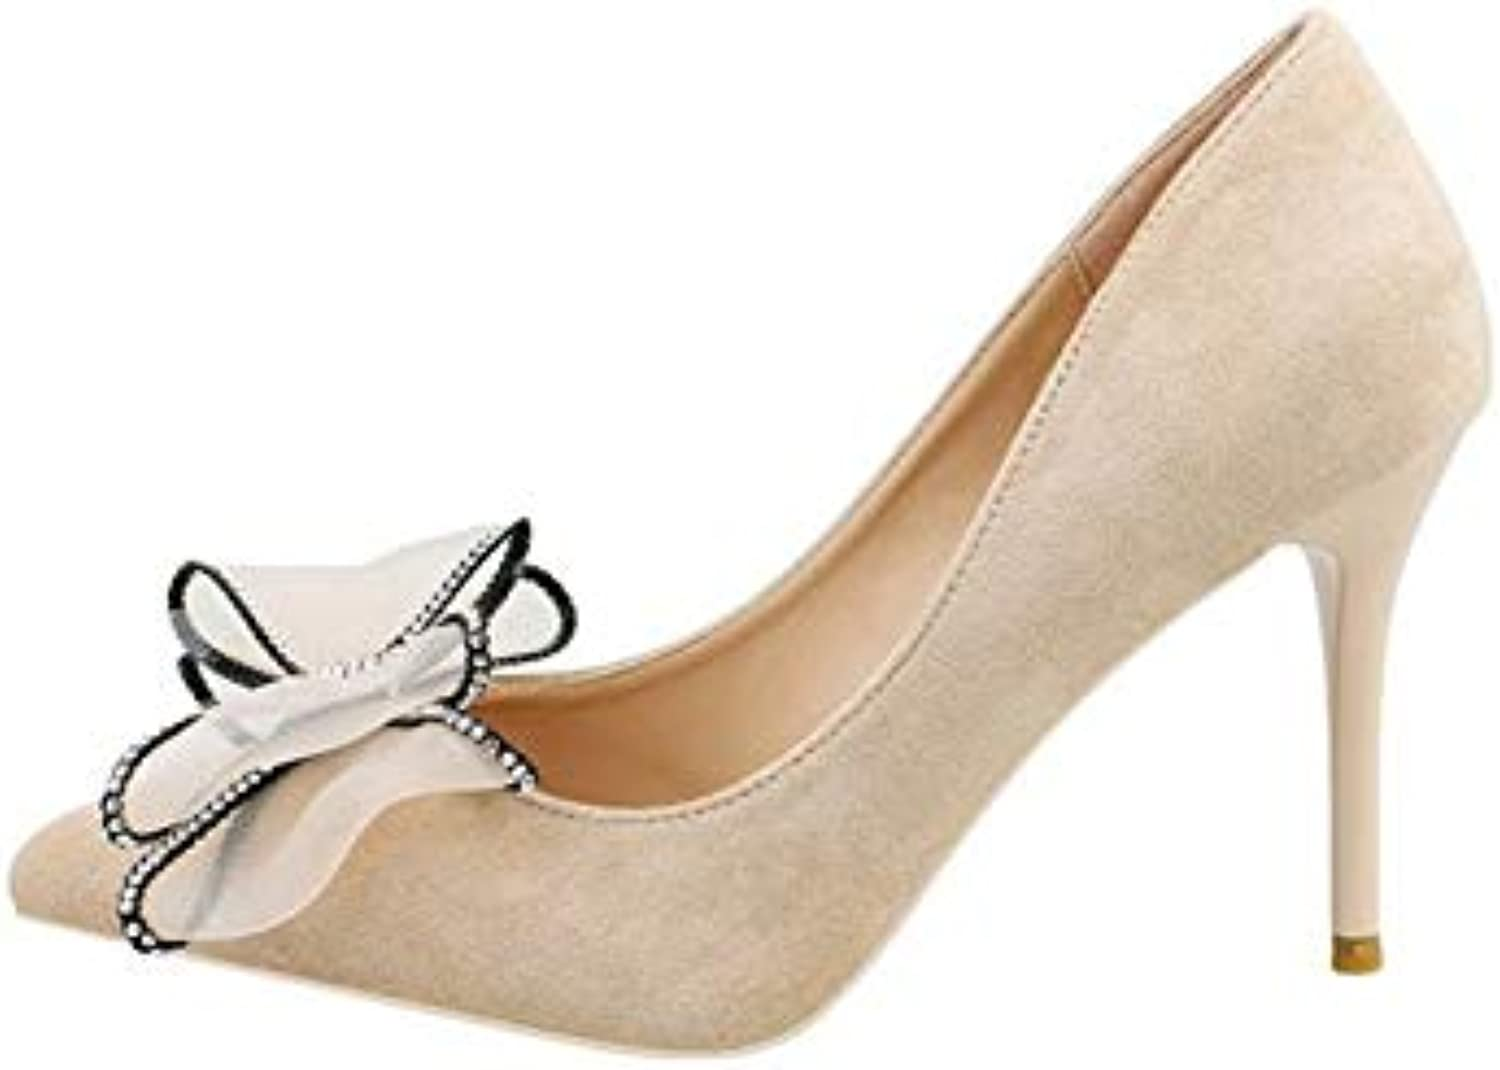 JQfashion Women's High-Heeled shoes Spring and Summer Single shoes Elegant Butterfly Knot Tip Fine-Heeled Shallow-mouthed Women's shoes